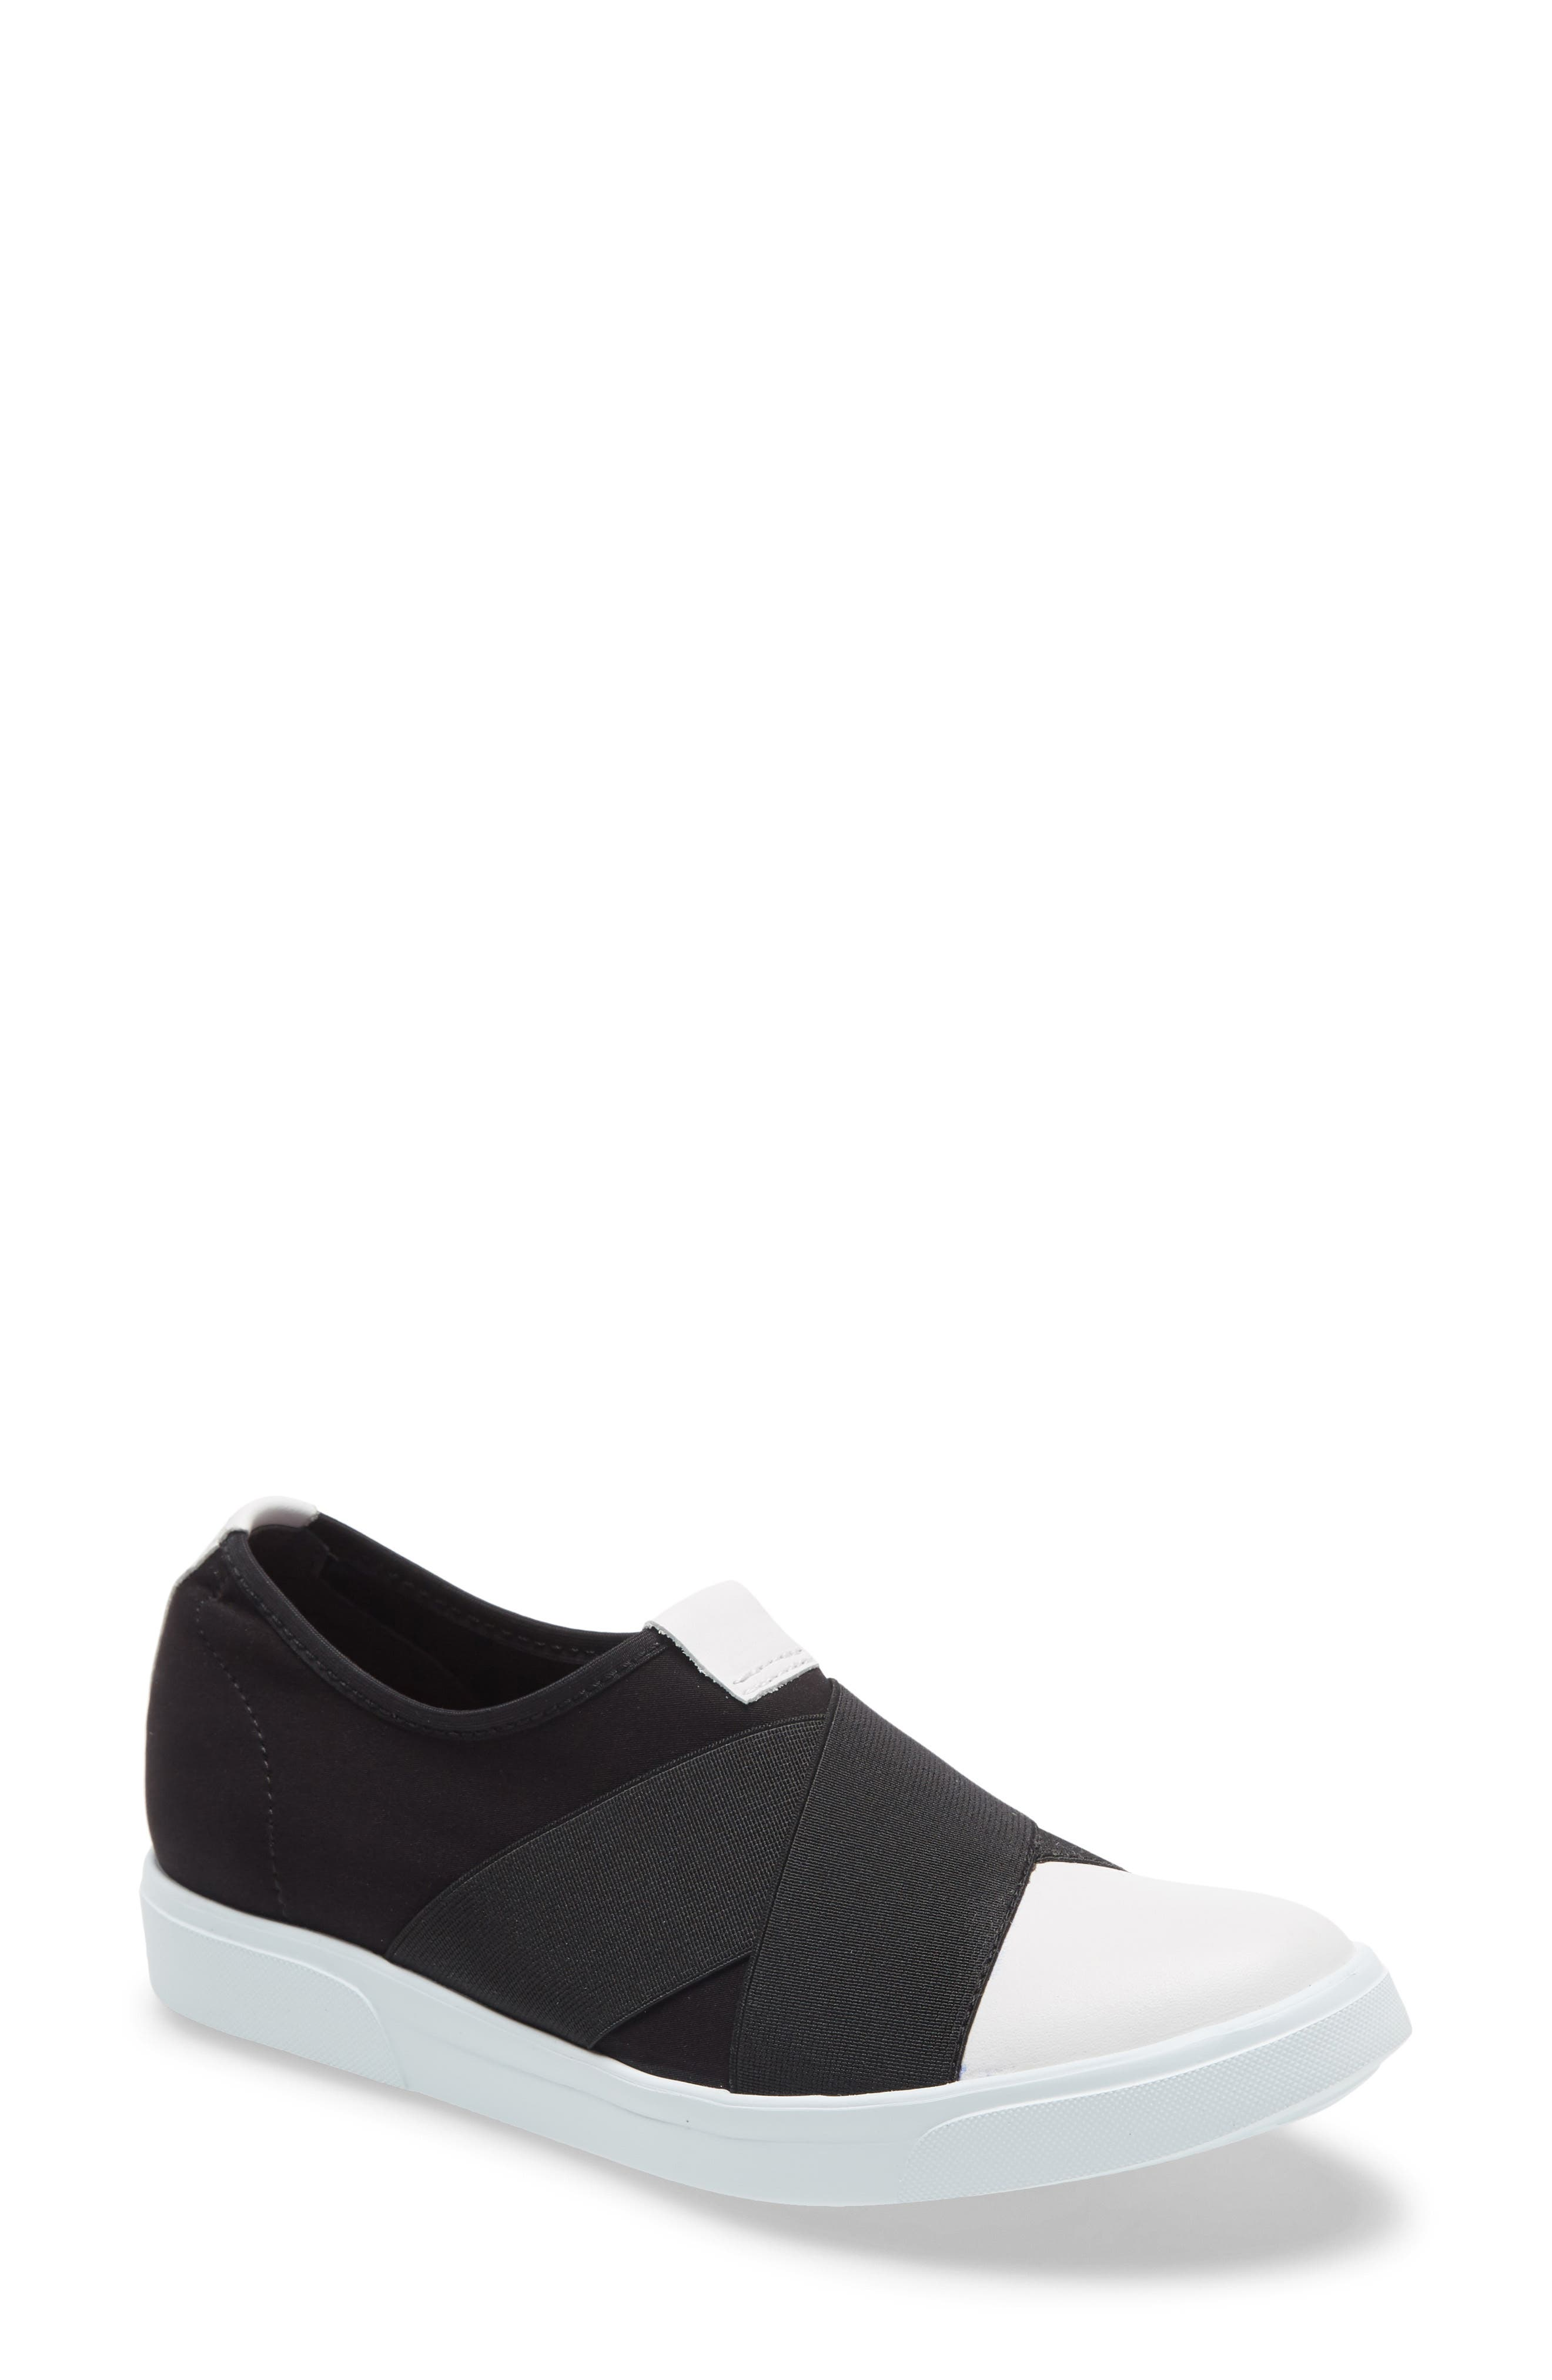 This versatile black-and-white sneaker with wide elastic straps comforts as you trek about with its breathable and moisture-wicking lining. Style Name: Munro Anjela Slip-On Sneaker (Women). Style Number: 5994415. Available in stores.